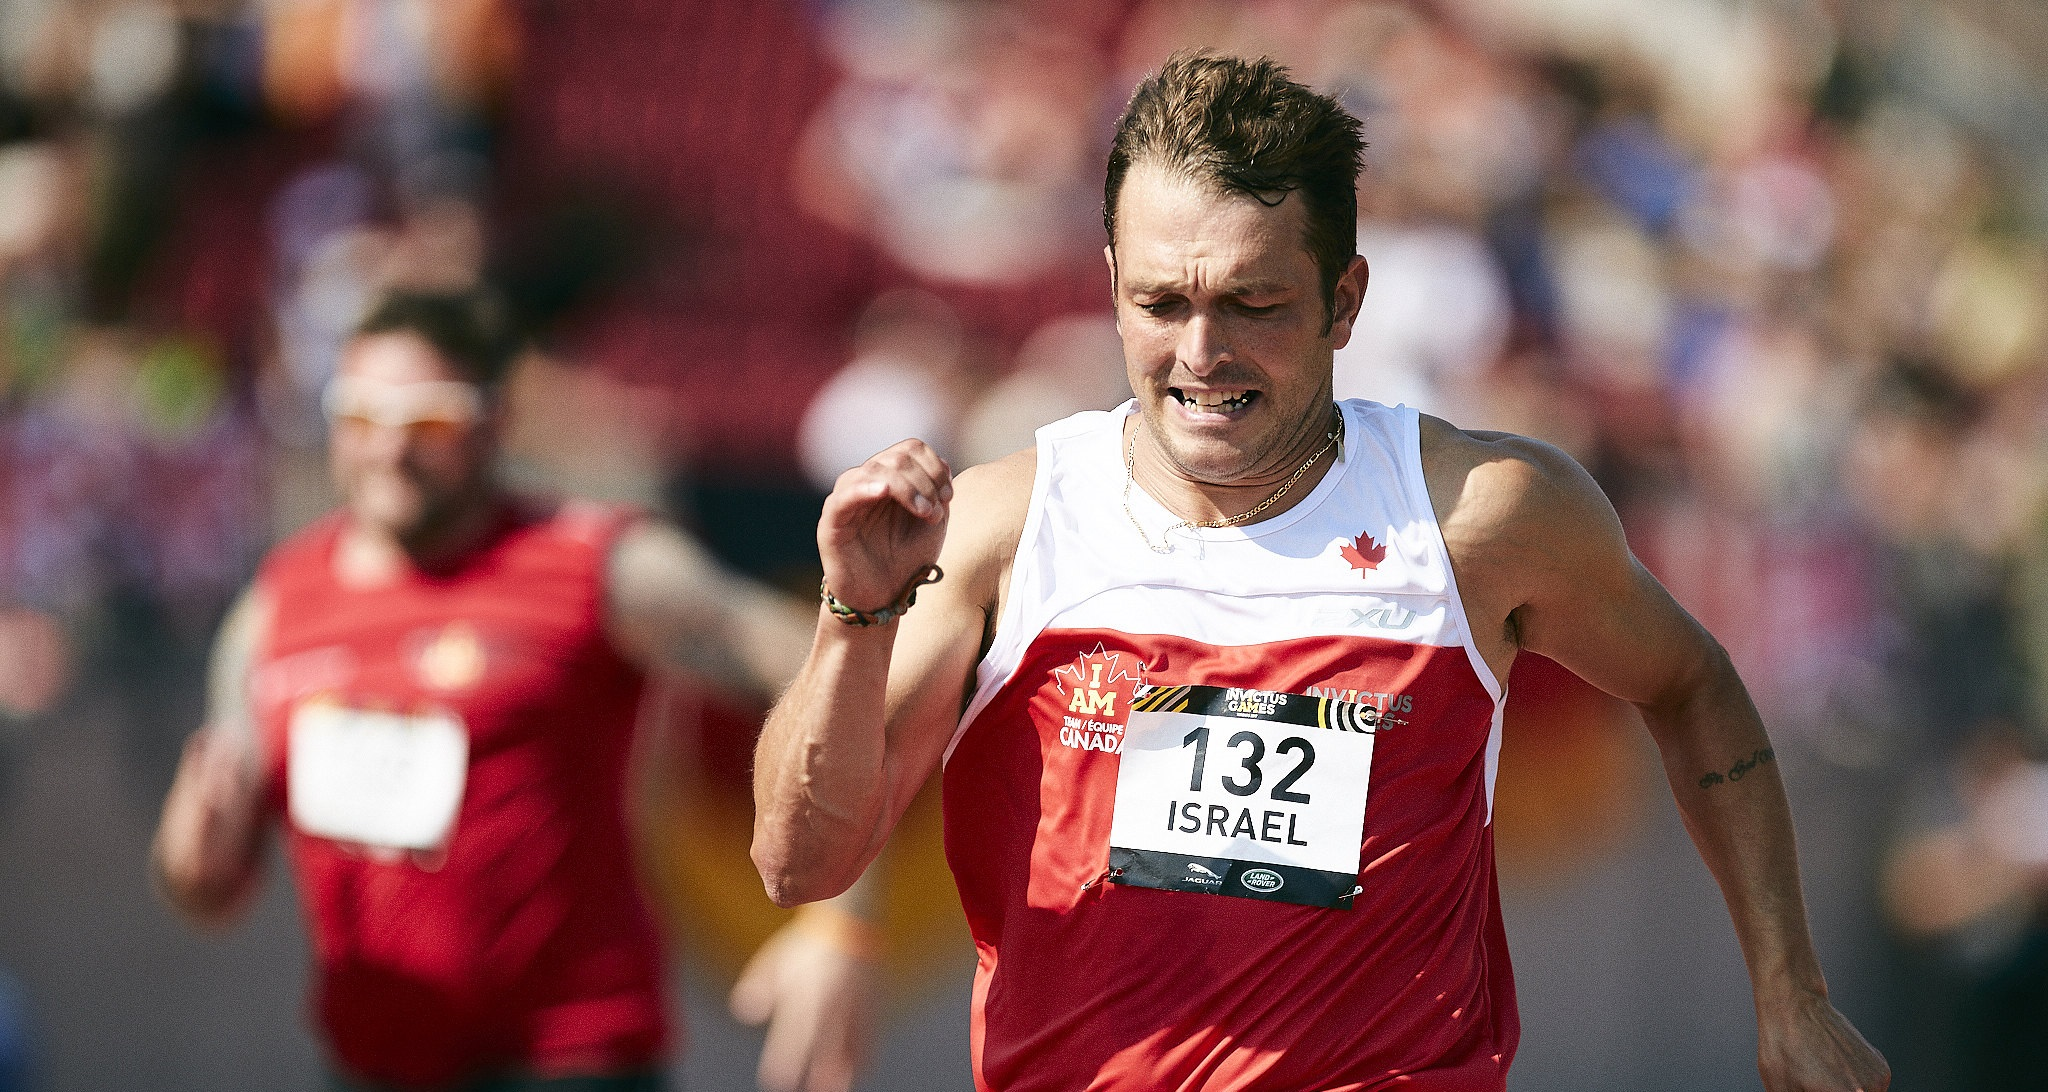 Jason Israel: Running to Recover Image